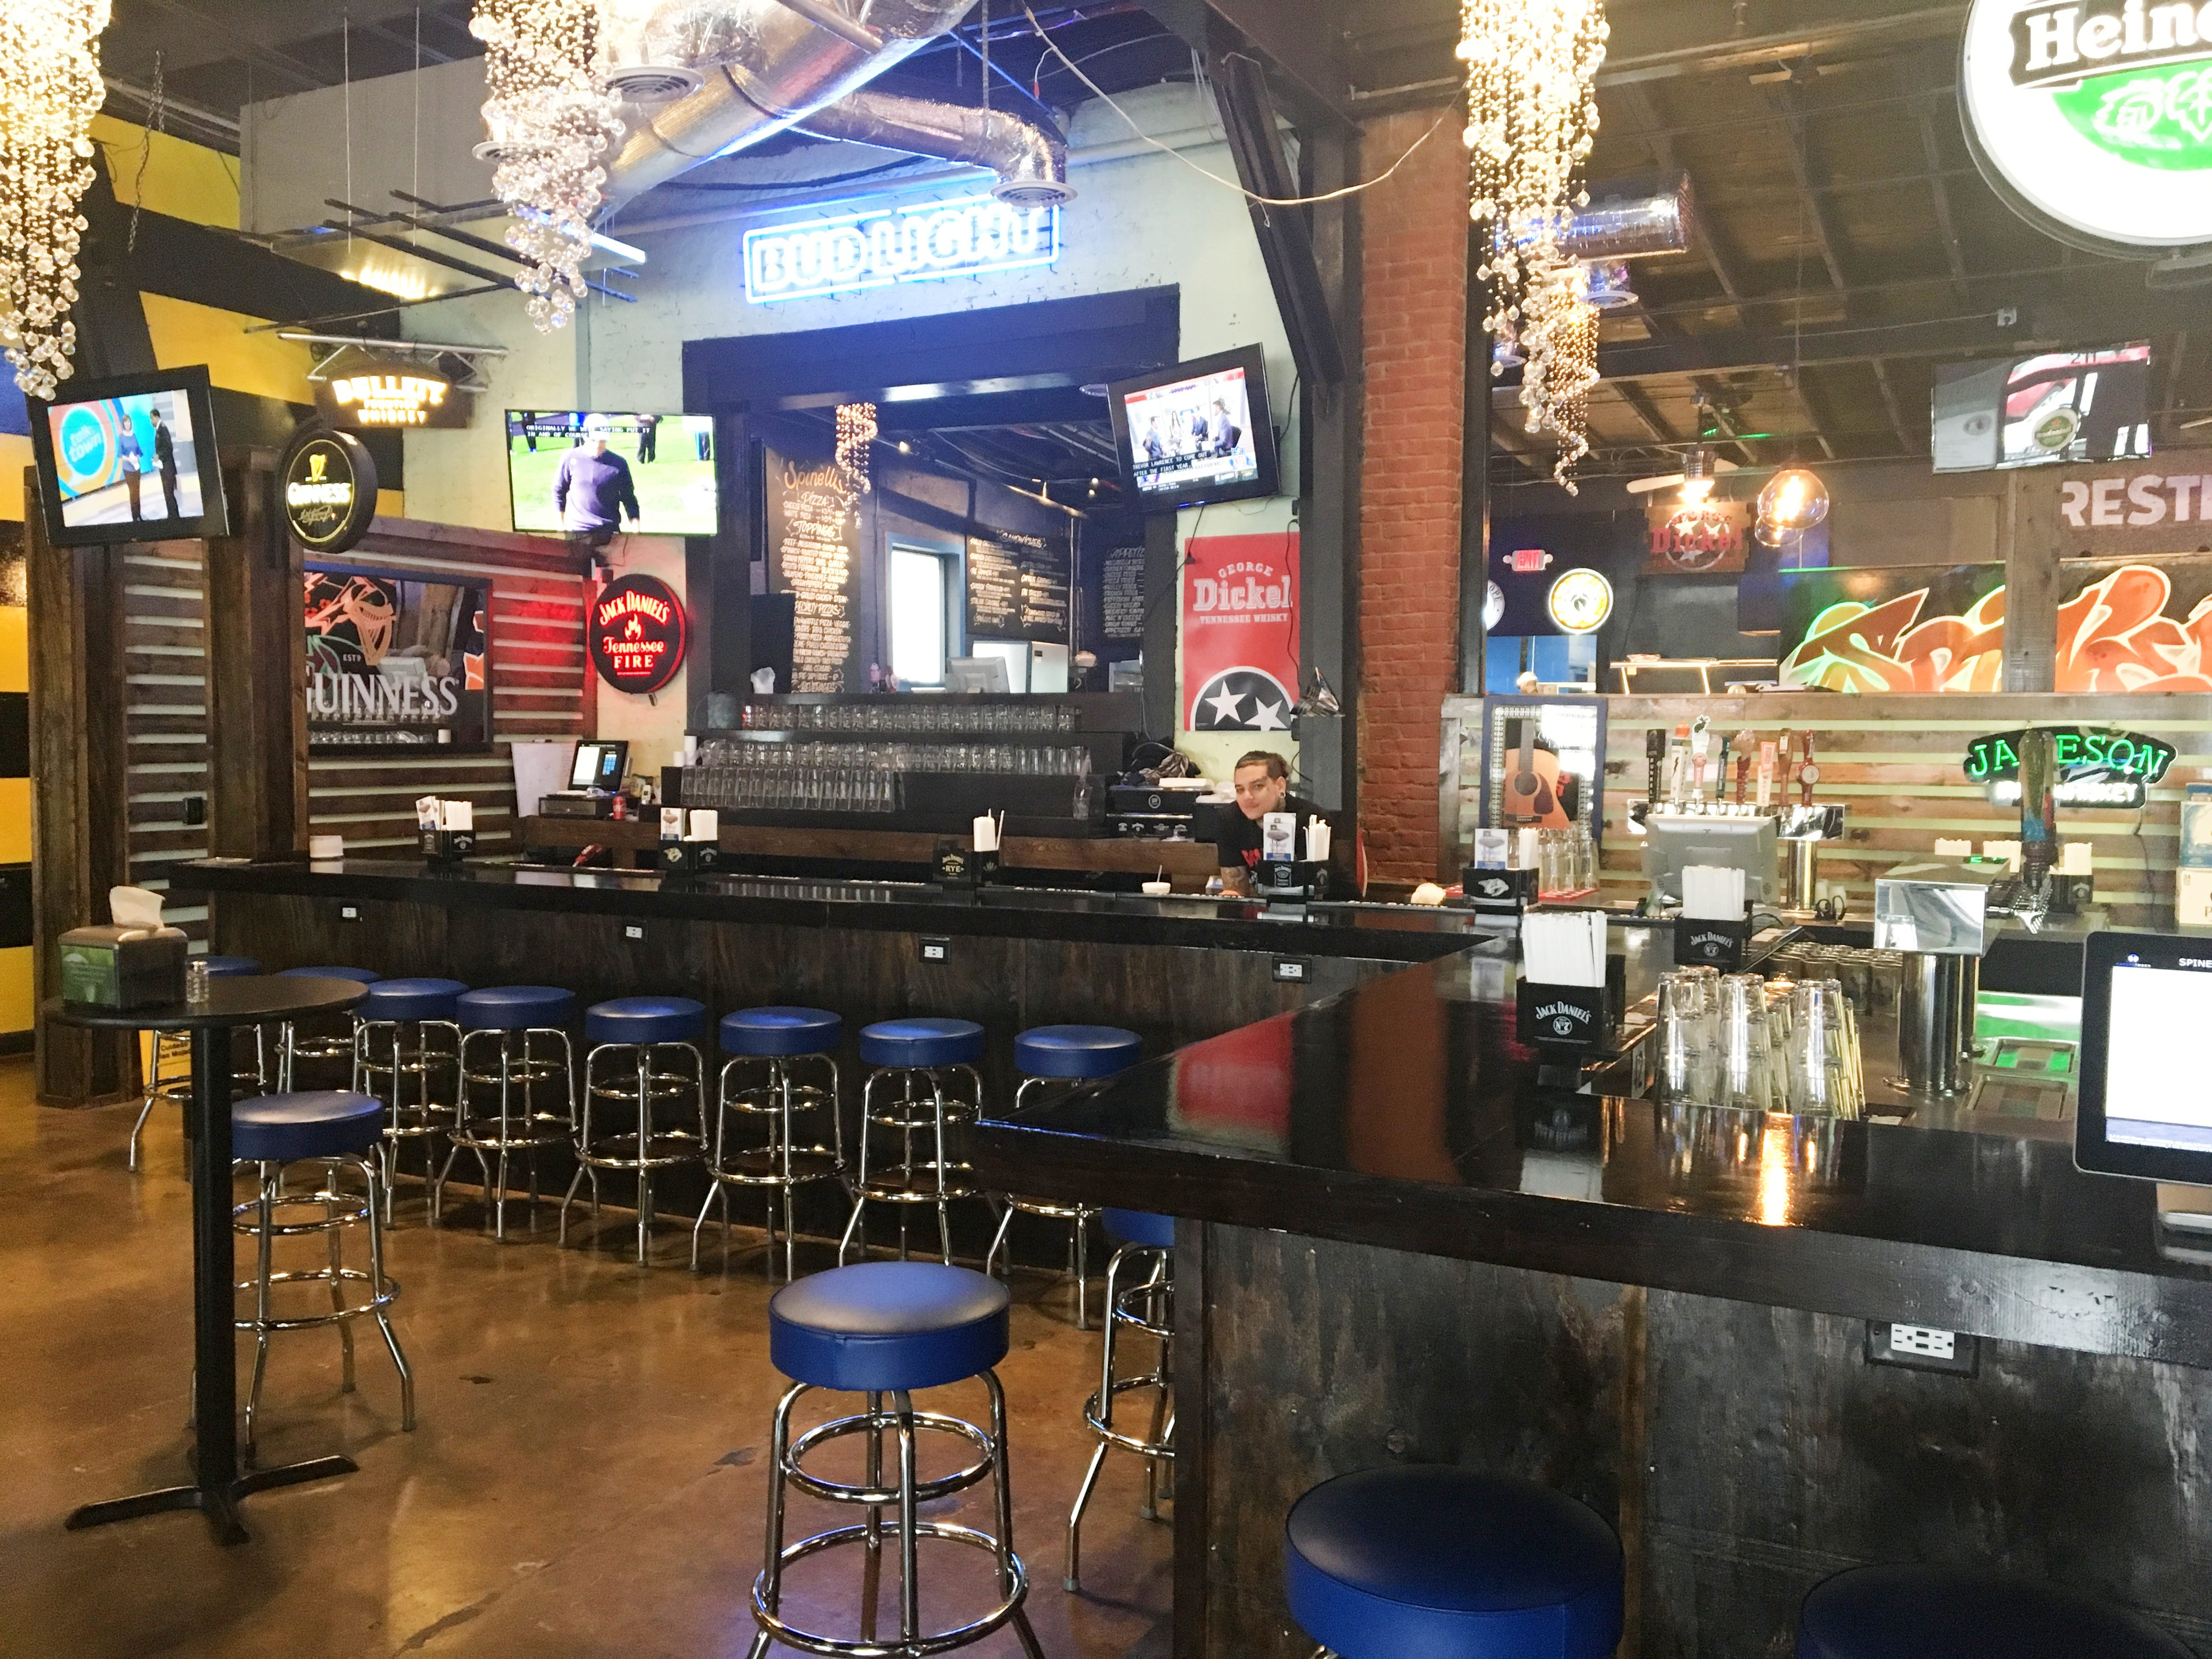 Spinelli's Pizzeria and Nick Newton's Restaurant and Bar opened in January at 211 W. Main St. in Murfreesboro. The two-in-one dining spot combines both concepts into one space.